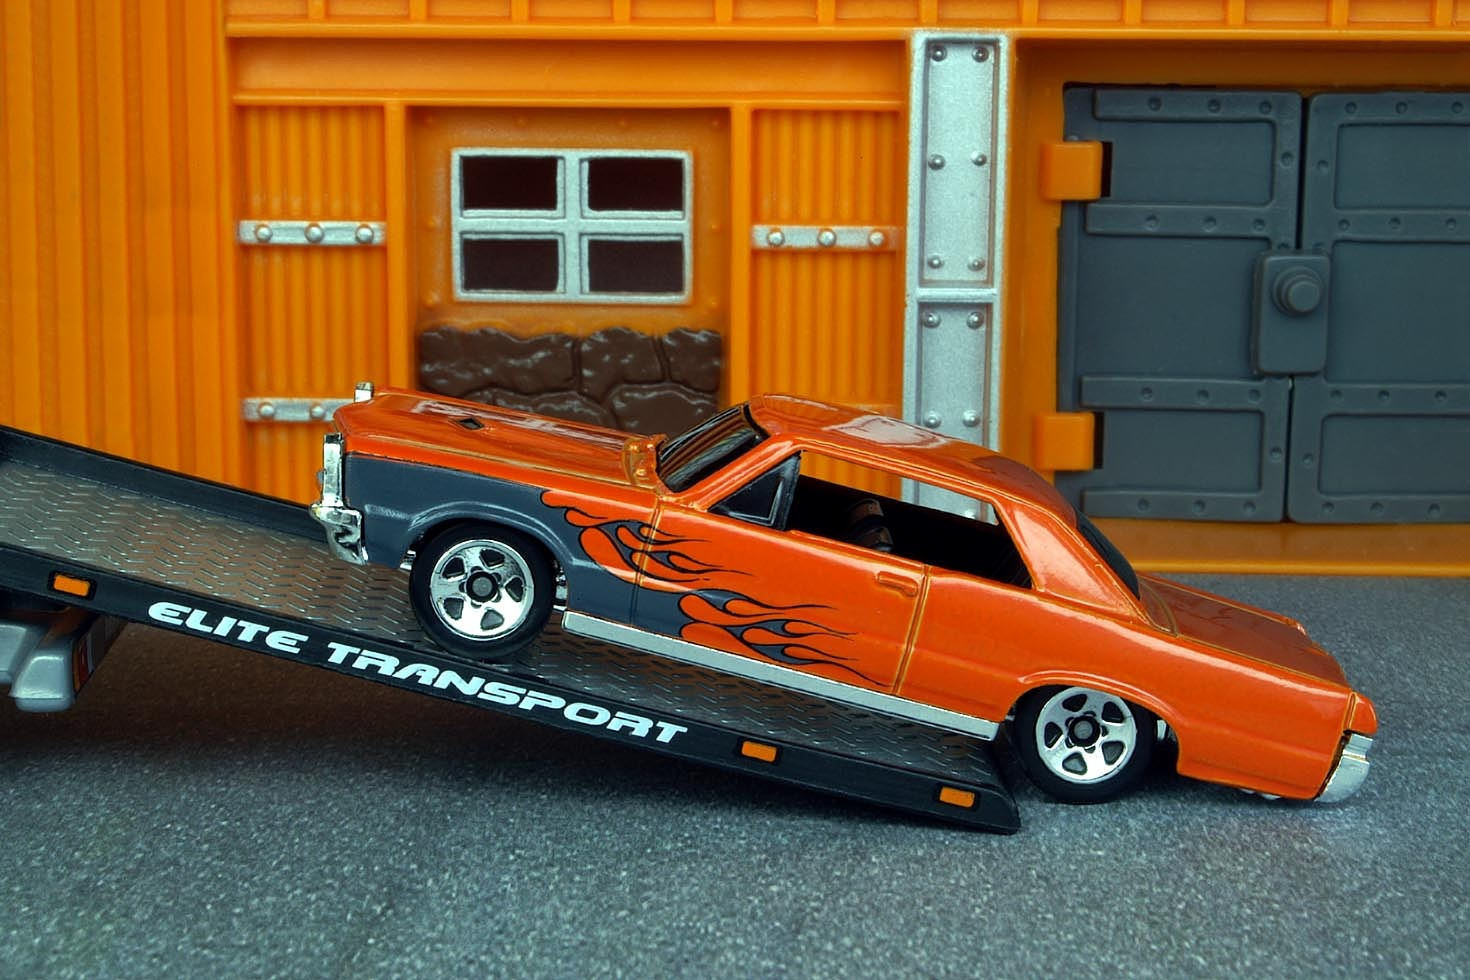 65 Pontiac GTO  Hot Wheels Wiki  Fandom powered by Wikia